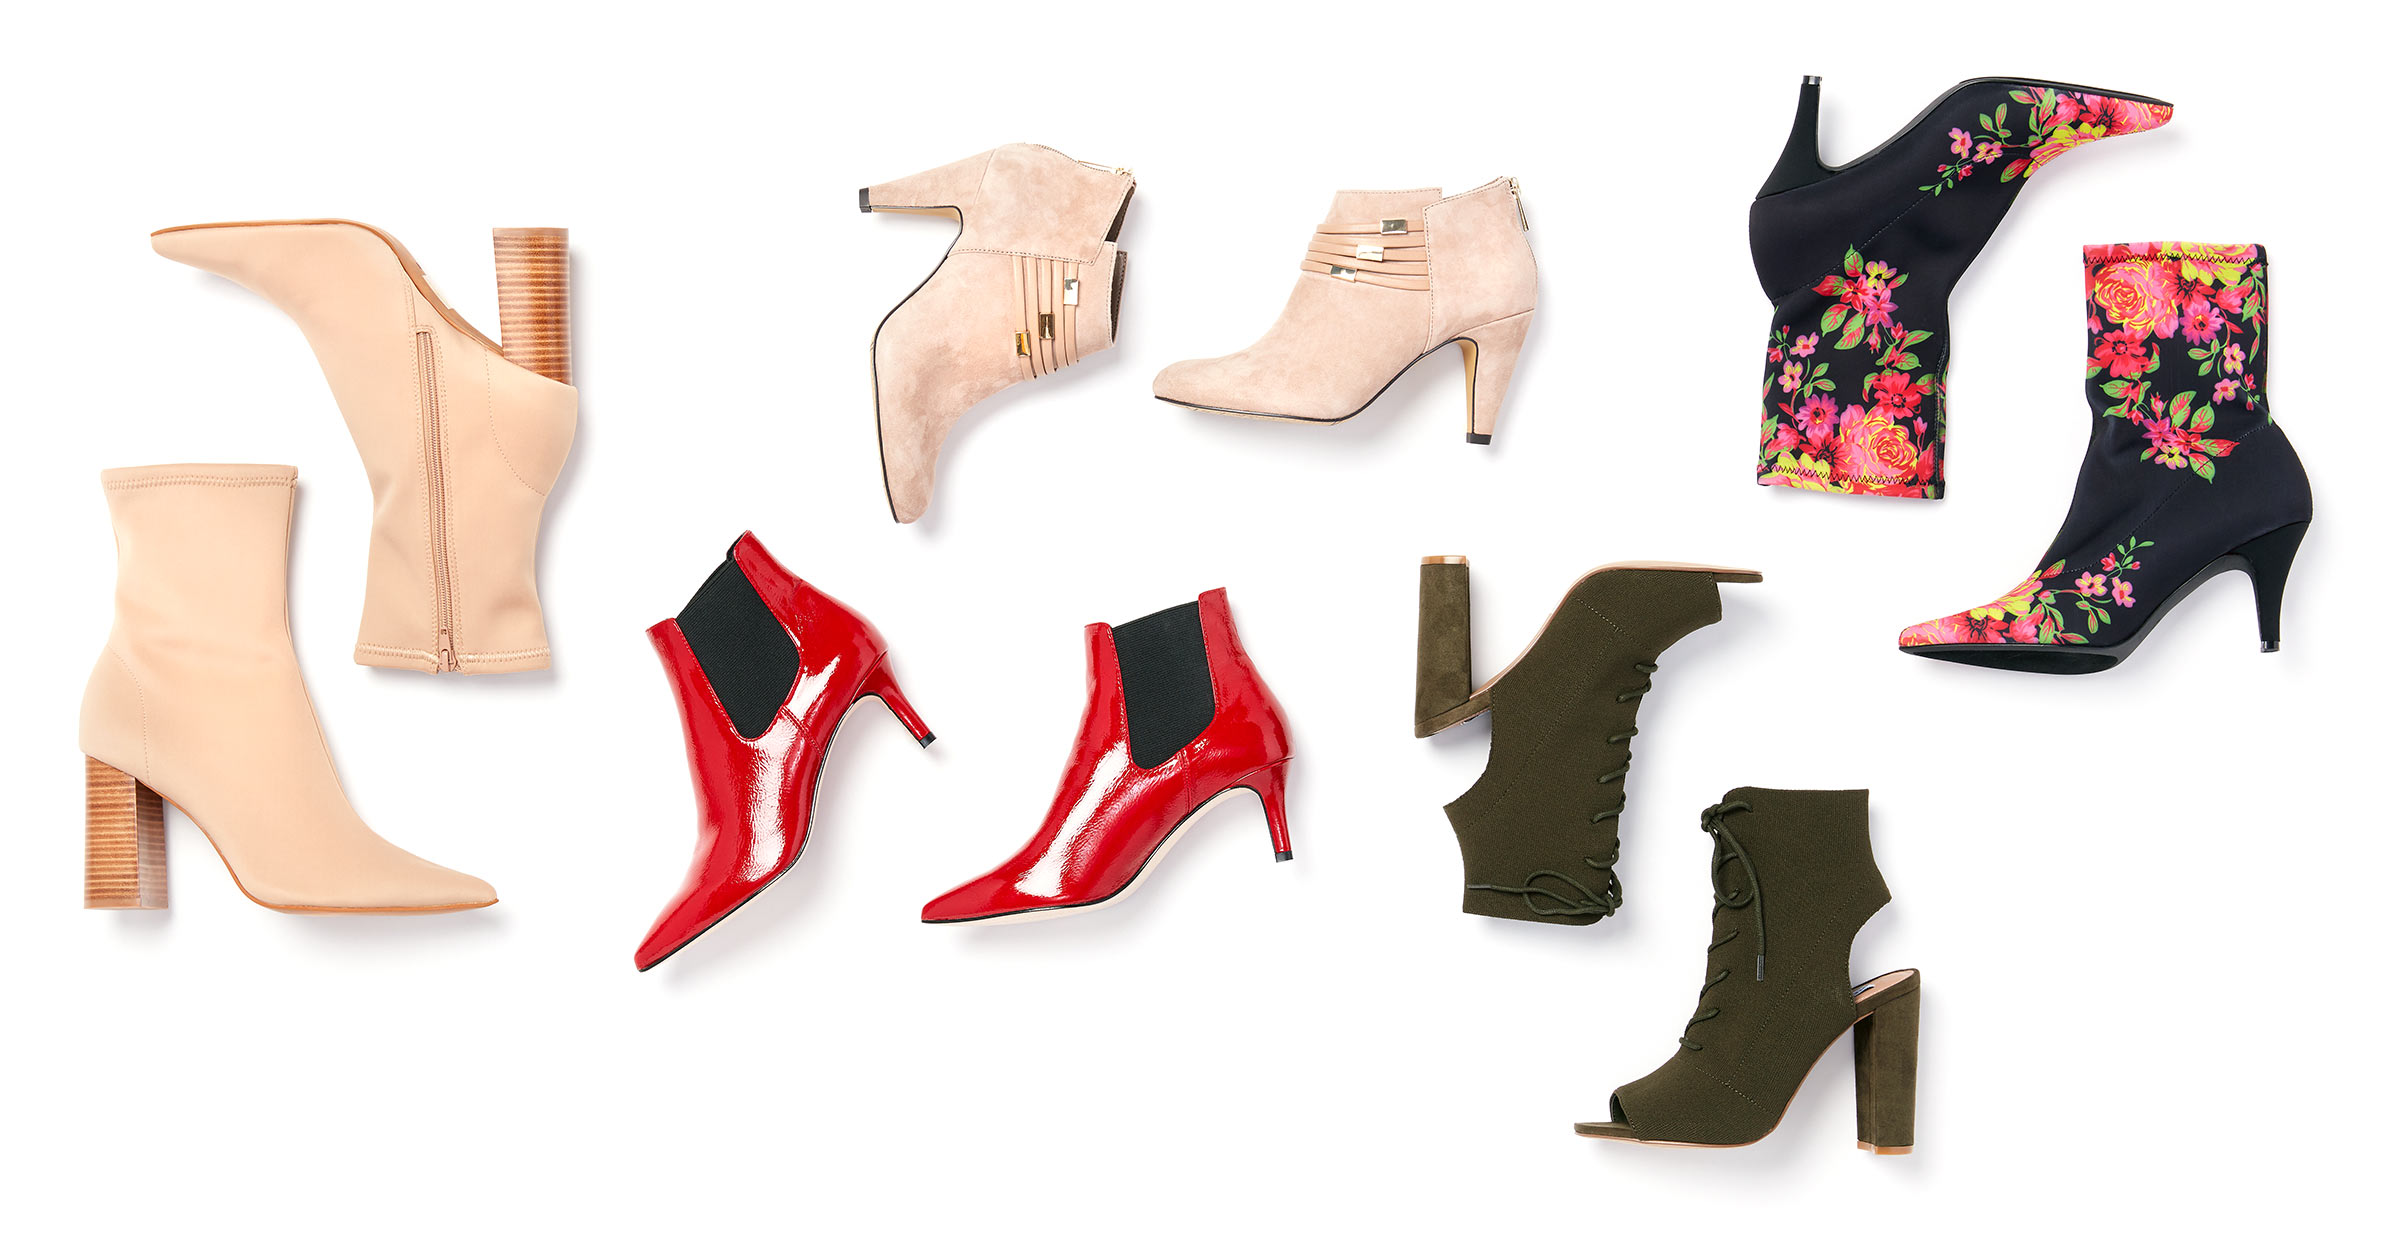 3 Bootie Styles to Wear Now (and Later)